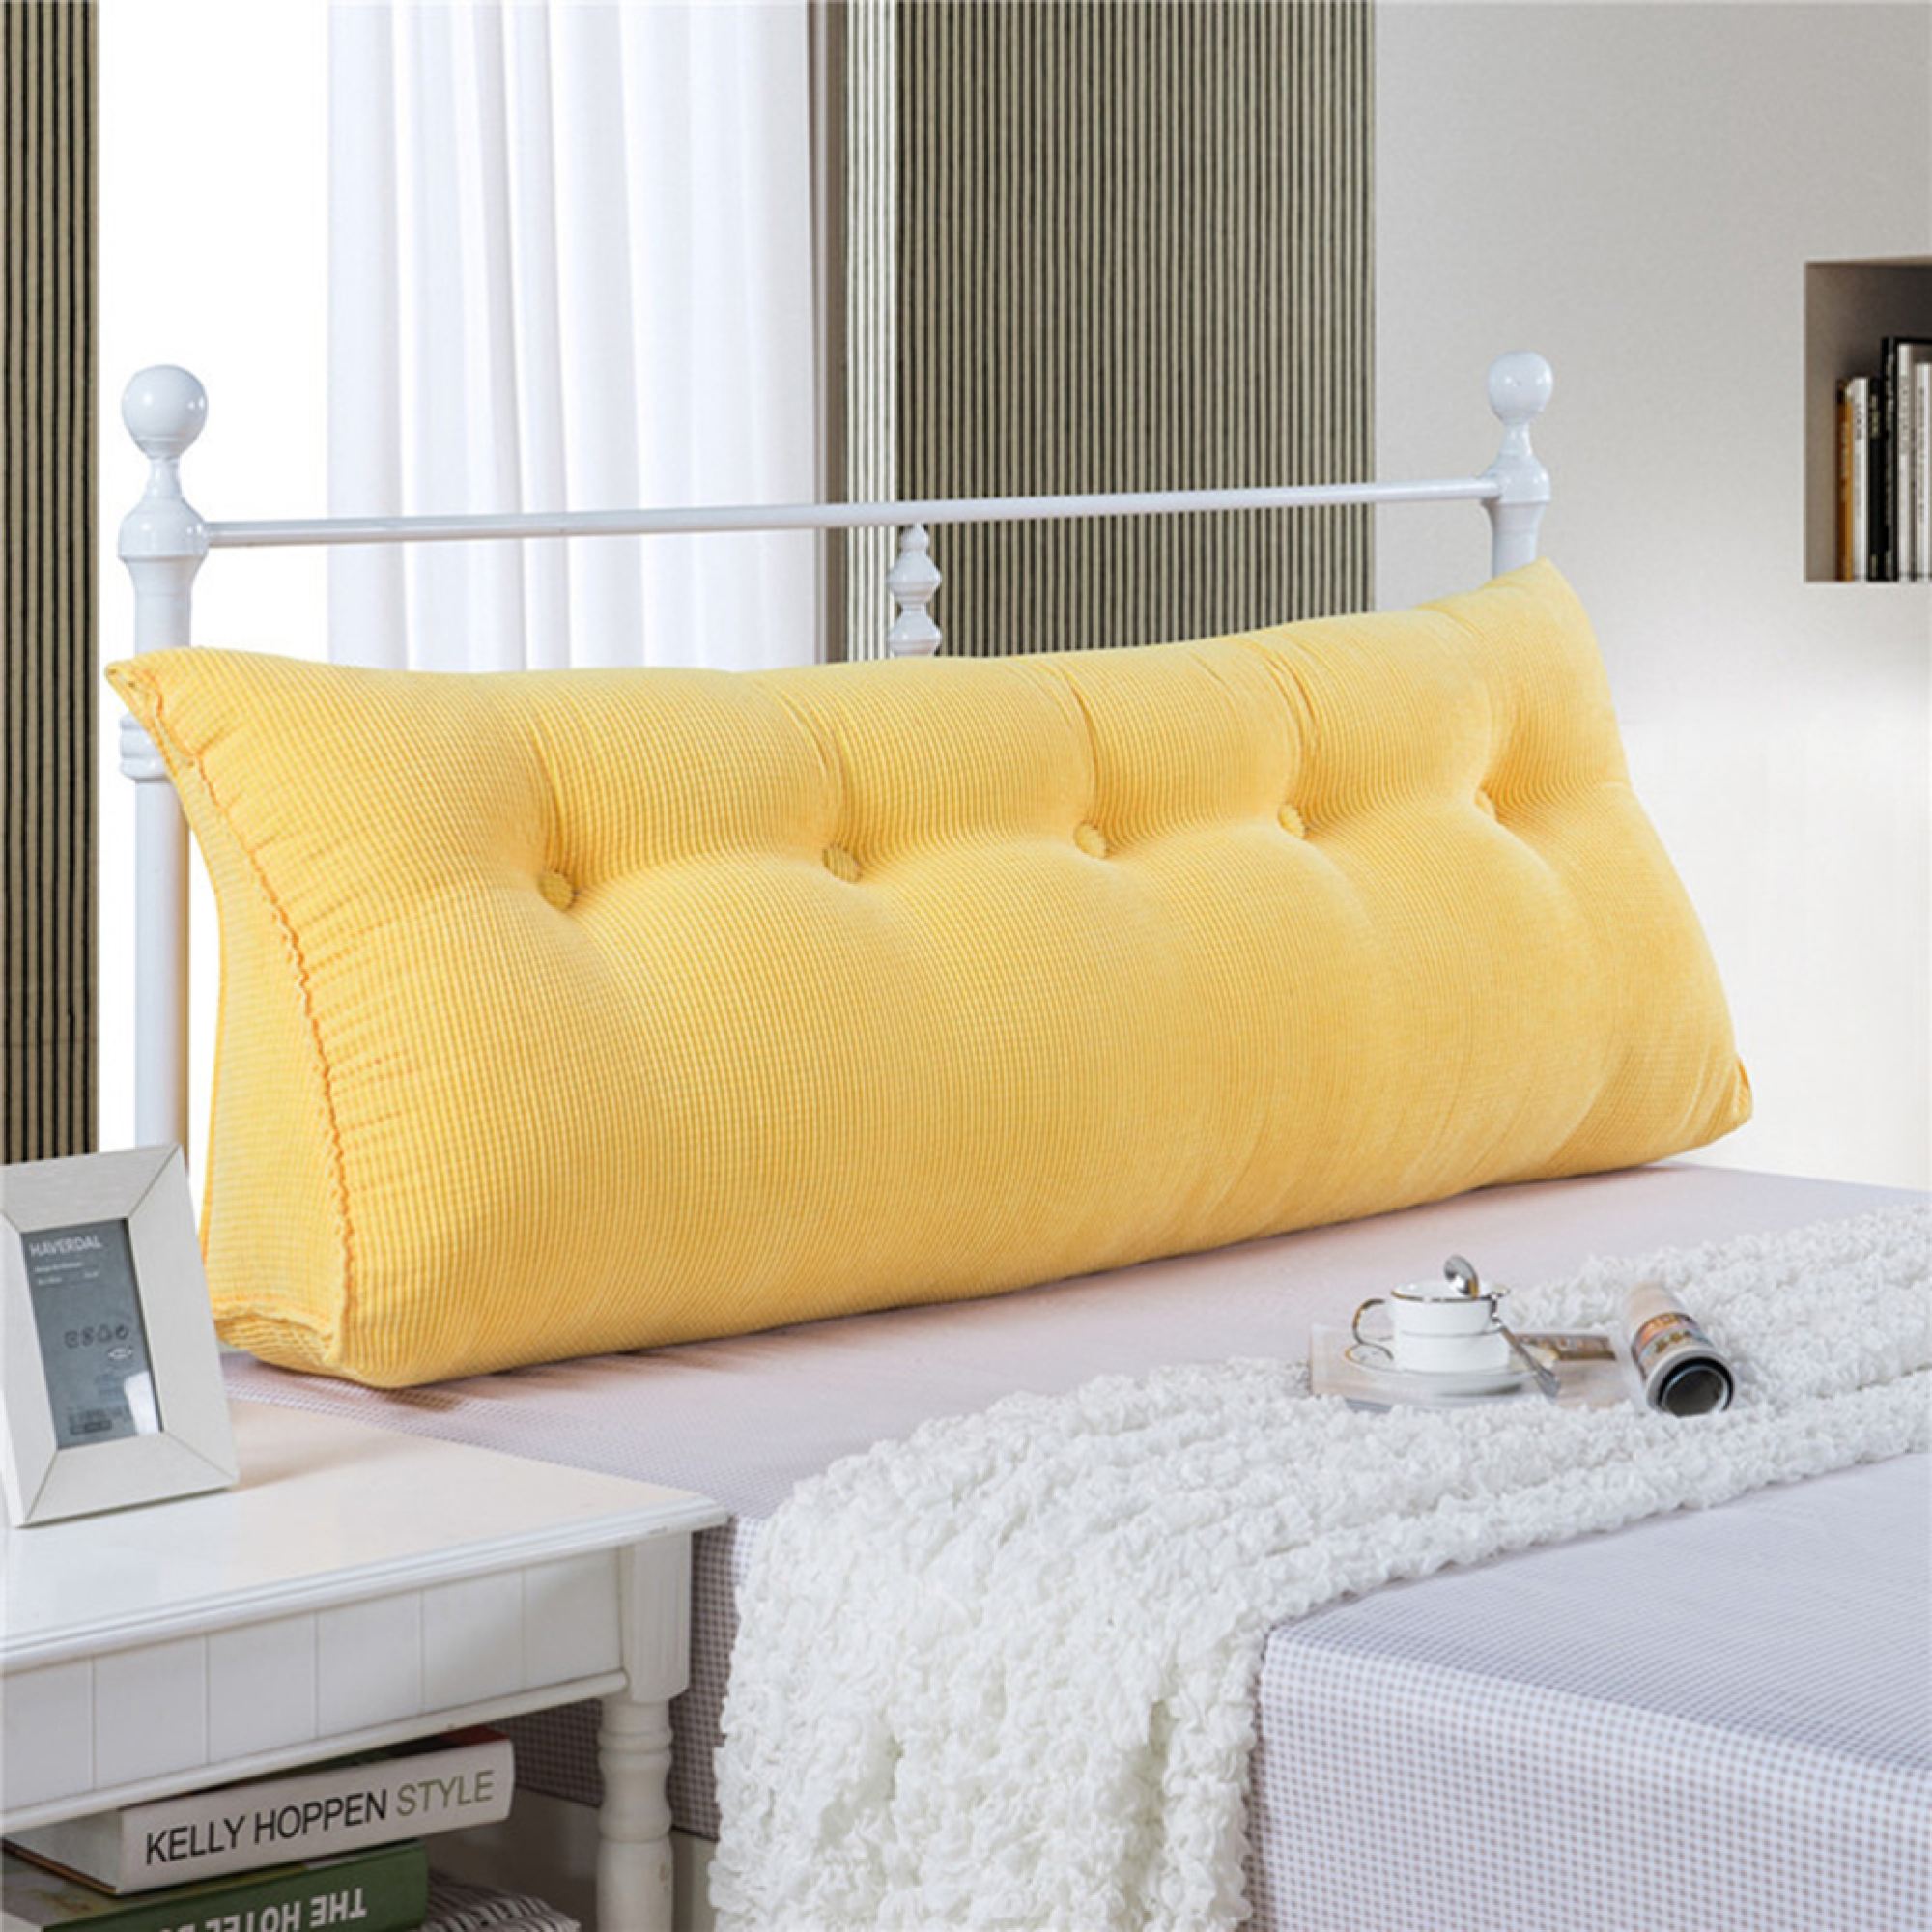 Reading Pillow Bed Sofa Bed Large Filled Triangular Wedge Cushion Bed Backrest Positioning Support Pillow Reading Pillow Office Lumbar Pad With Removable Cover Yellow